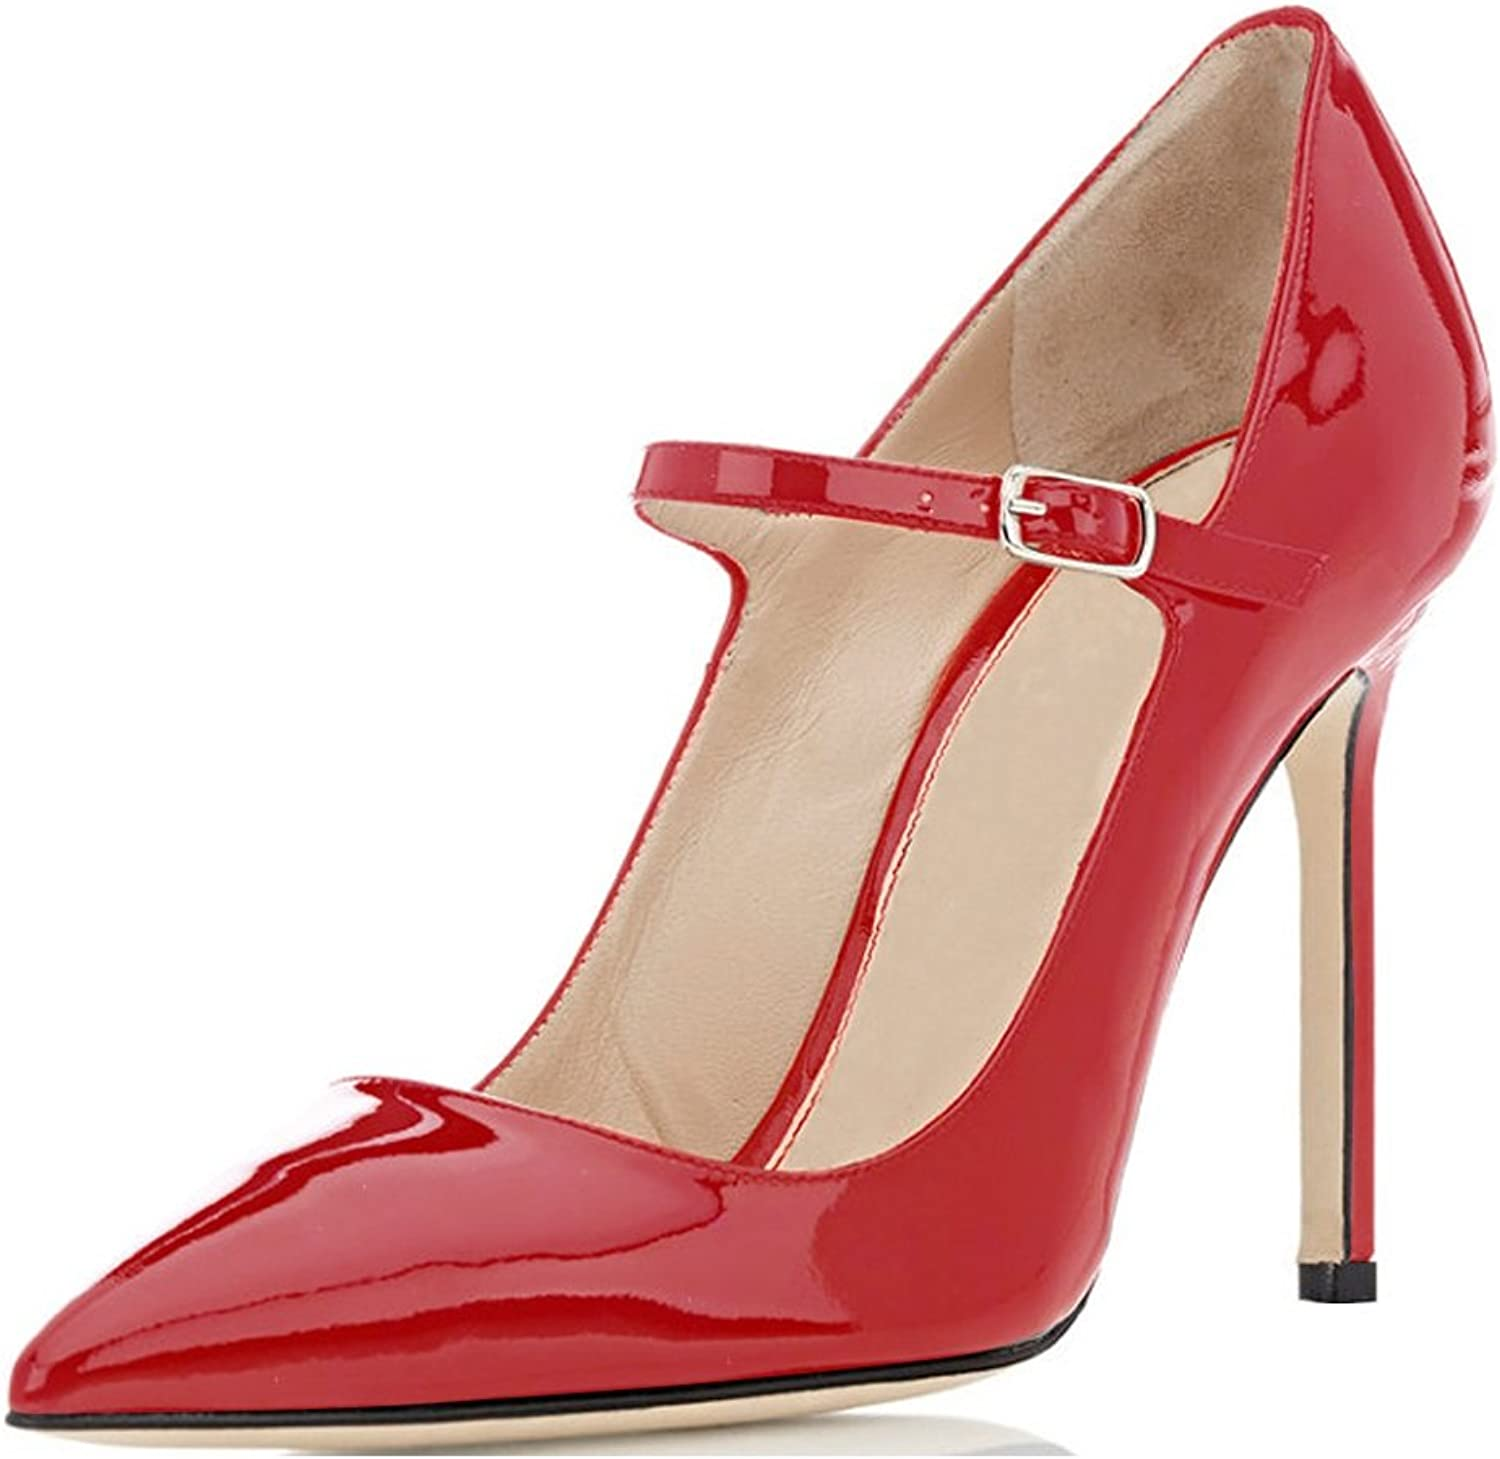 Sammitop Women's Pointed Toe Mary Jane Pumps High Heel shoes with Ankle Strap